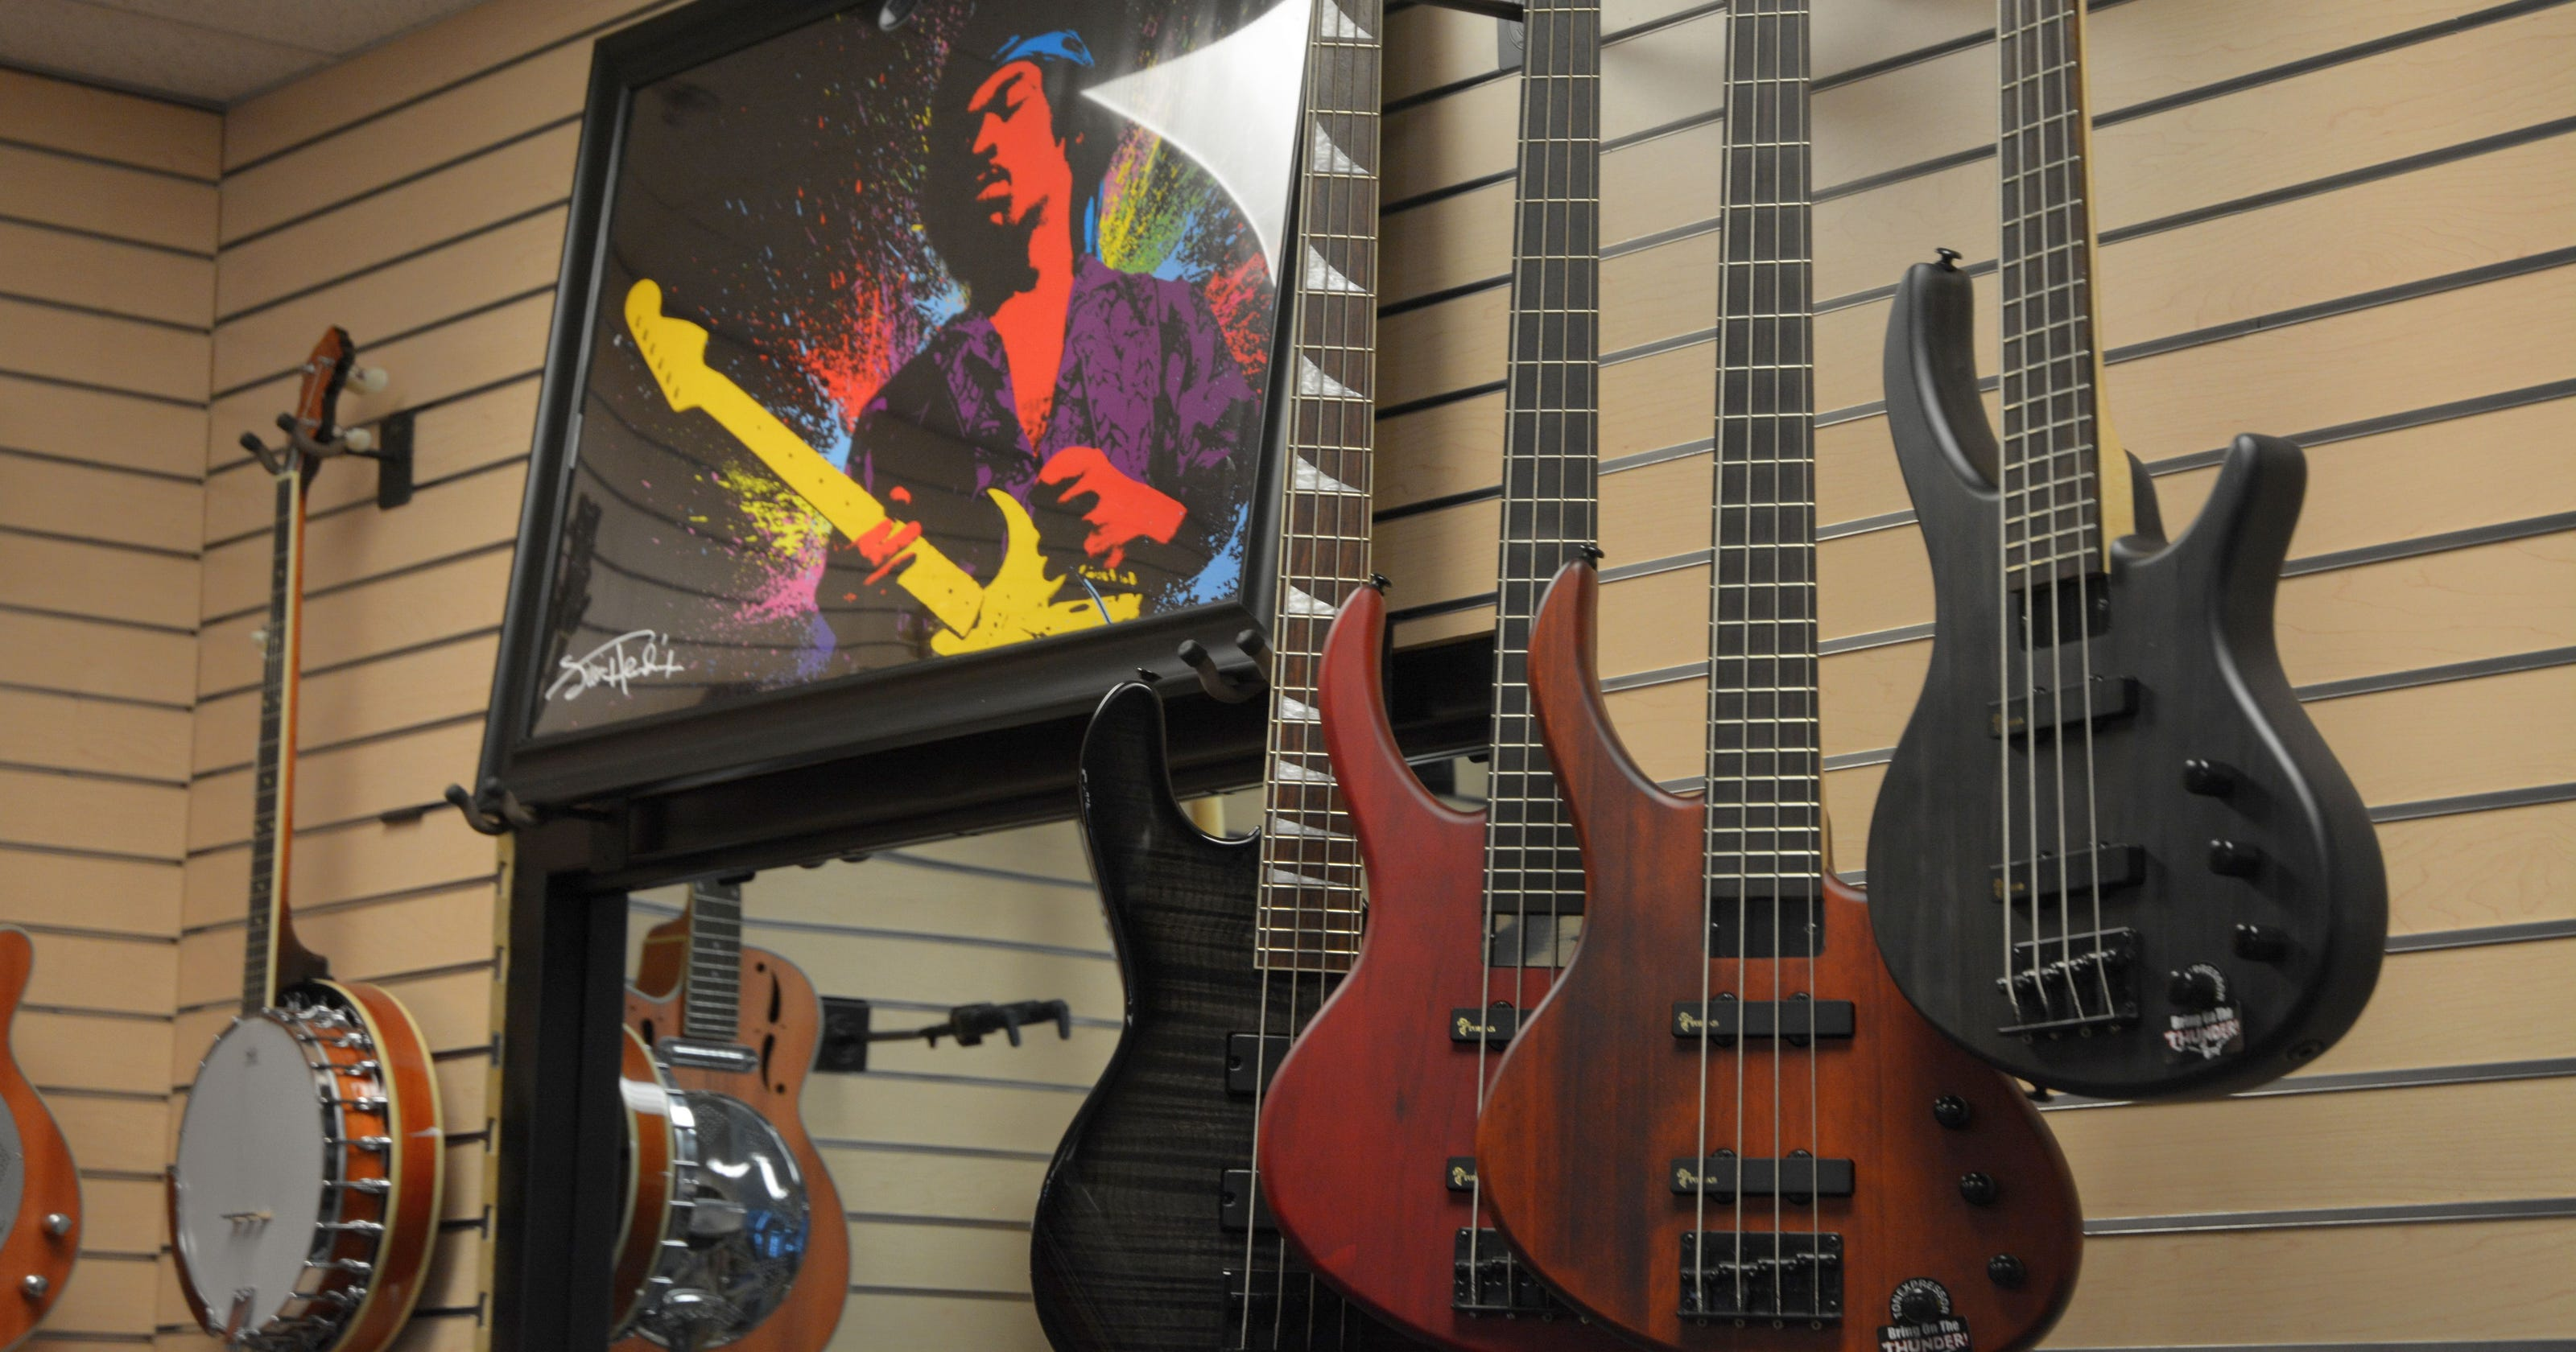 Where To Buy Guitars In Mesa Gilbert Chandler And Tempe